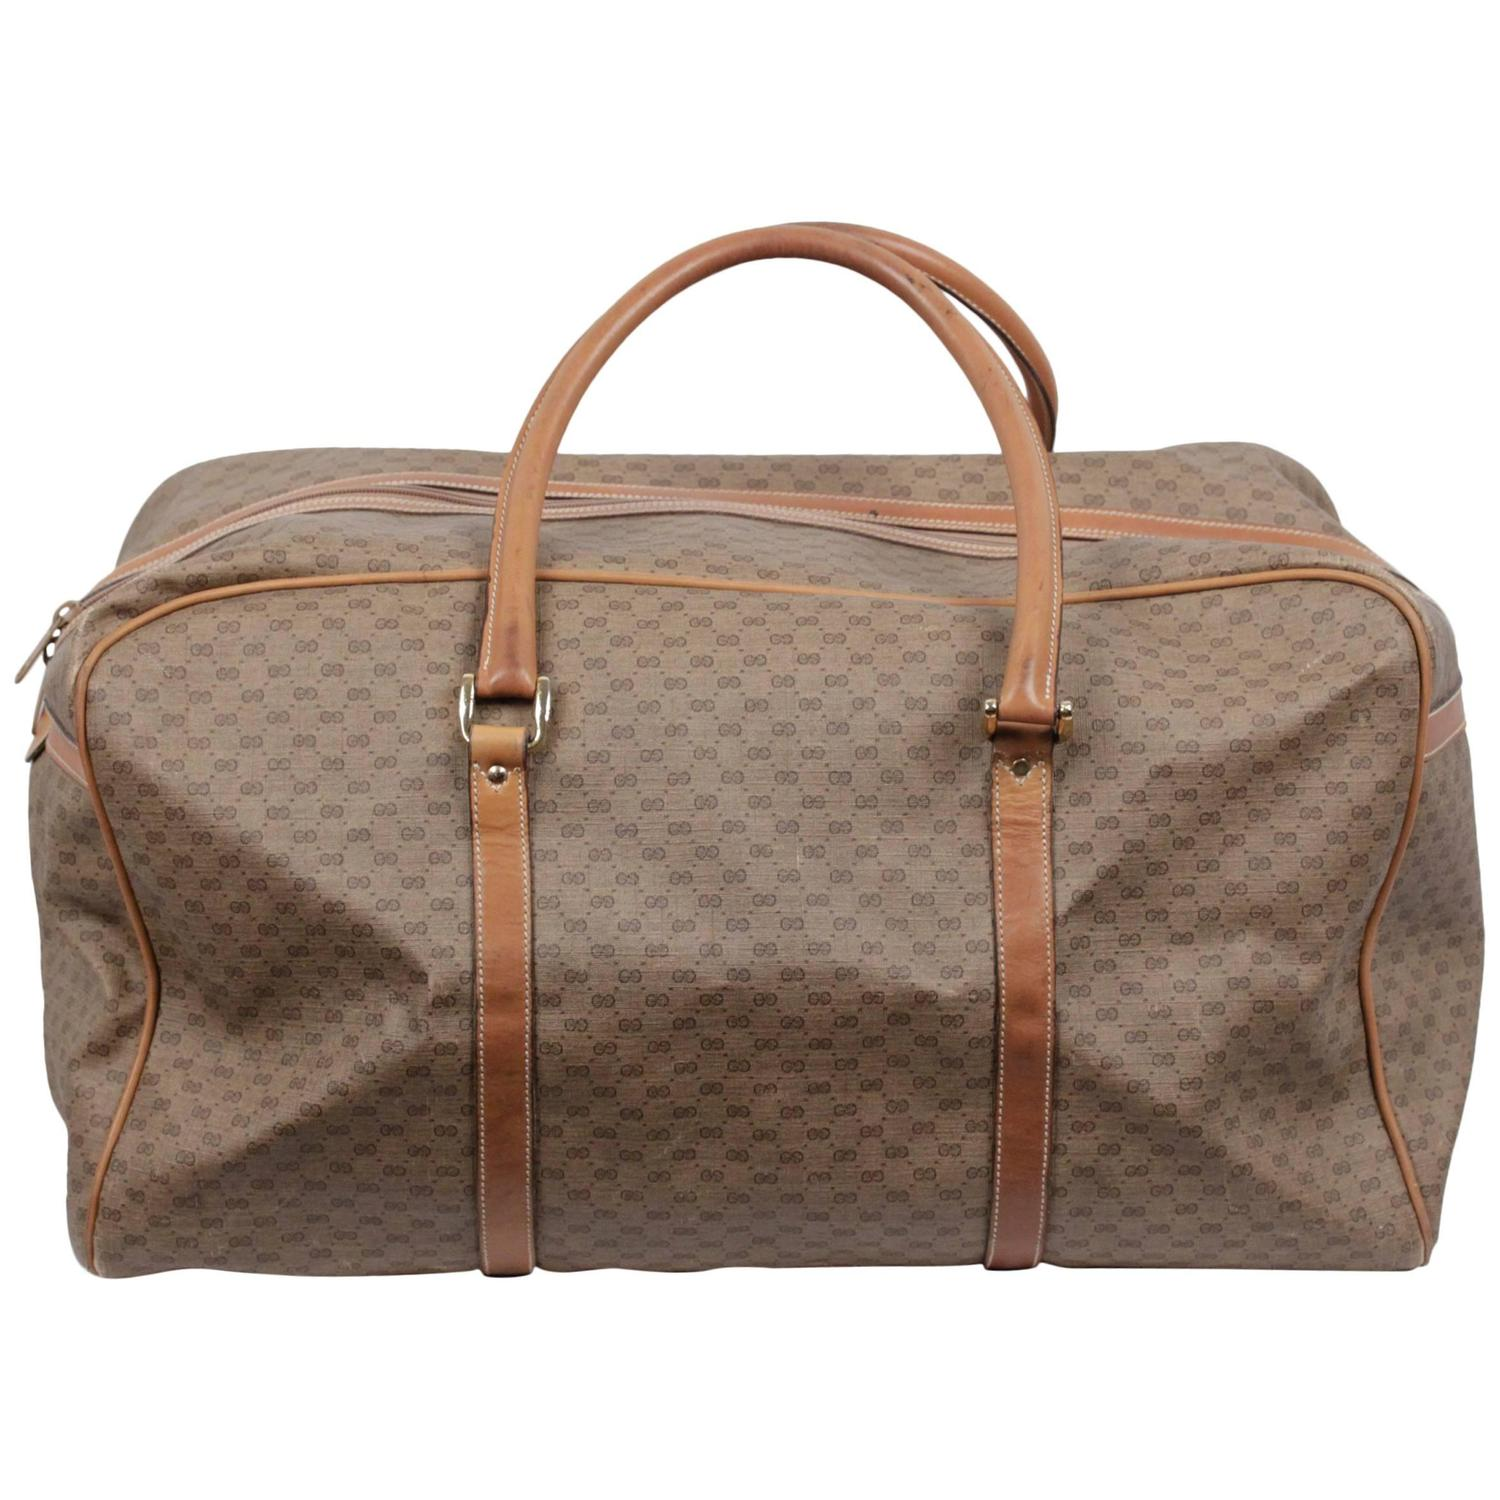 db433dca6 GUCCI Vintage Tan GG MONOGRAM Canvas WEEKENDER Travel Bag at 1stdibs